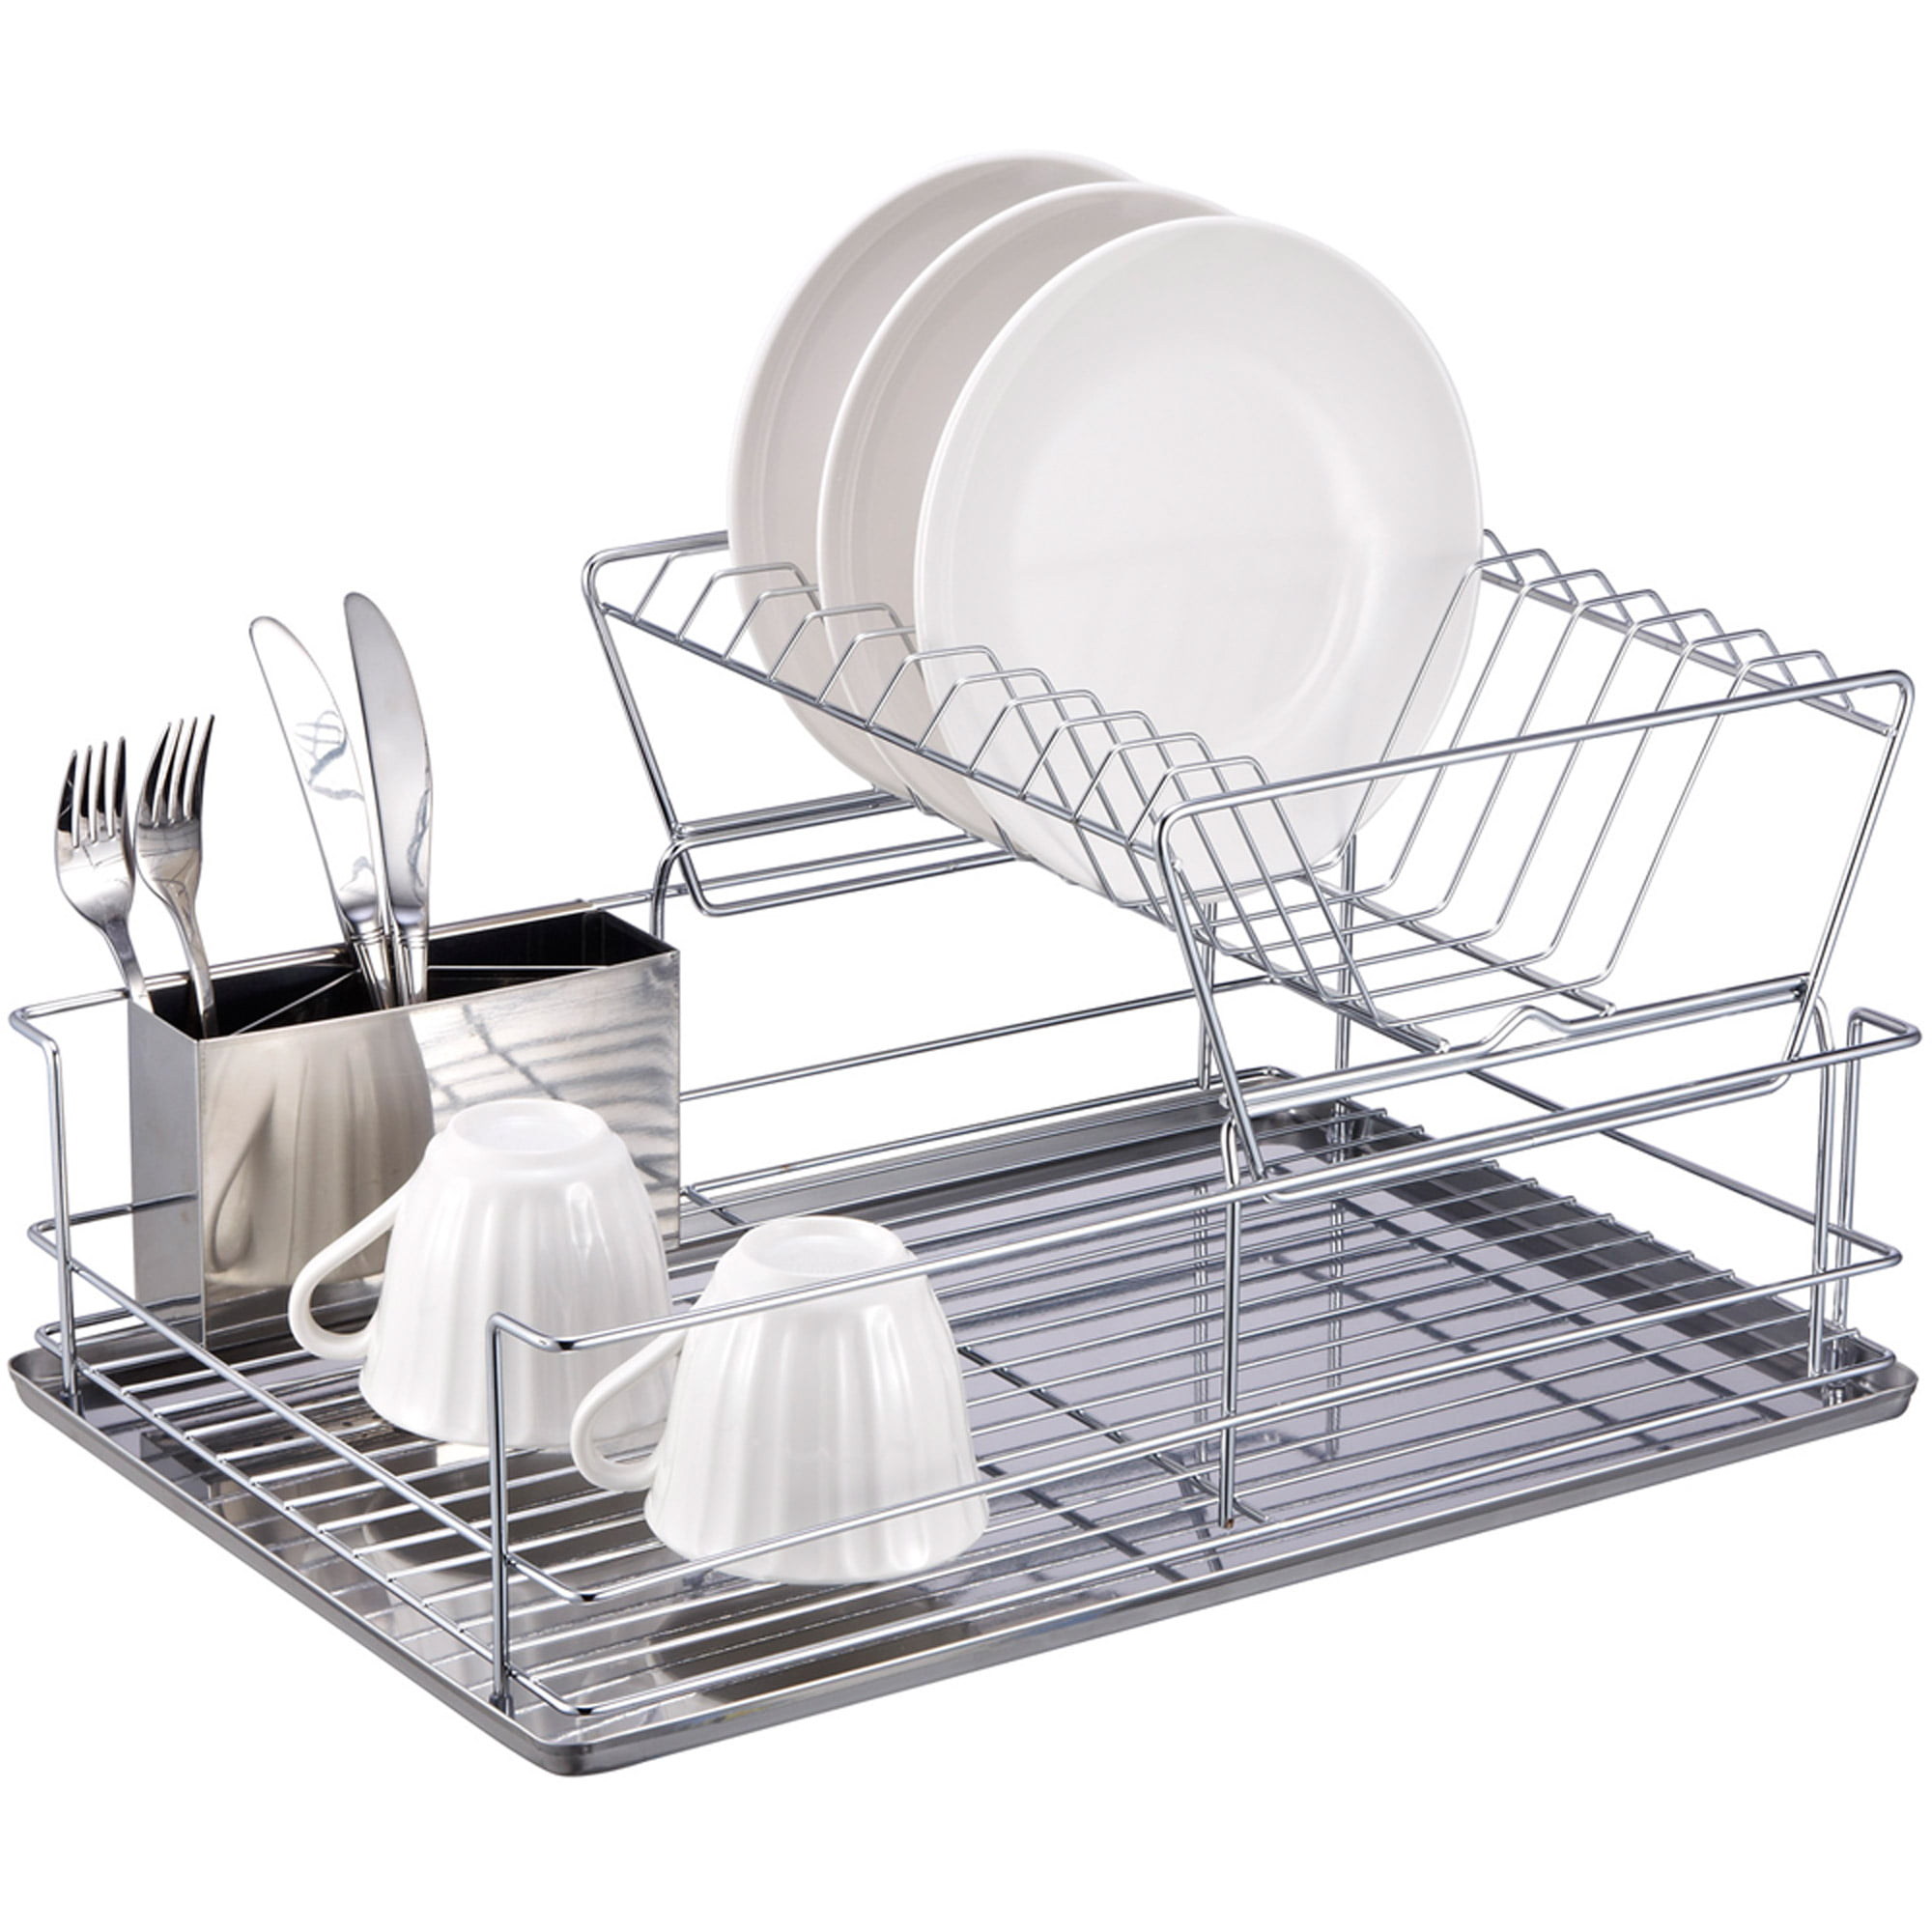 2-Tier Dish Rack, Chrome Stainless Steel by Generic